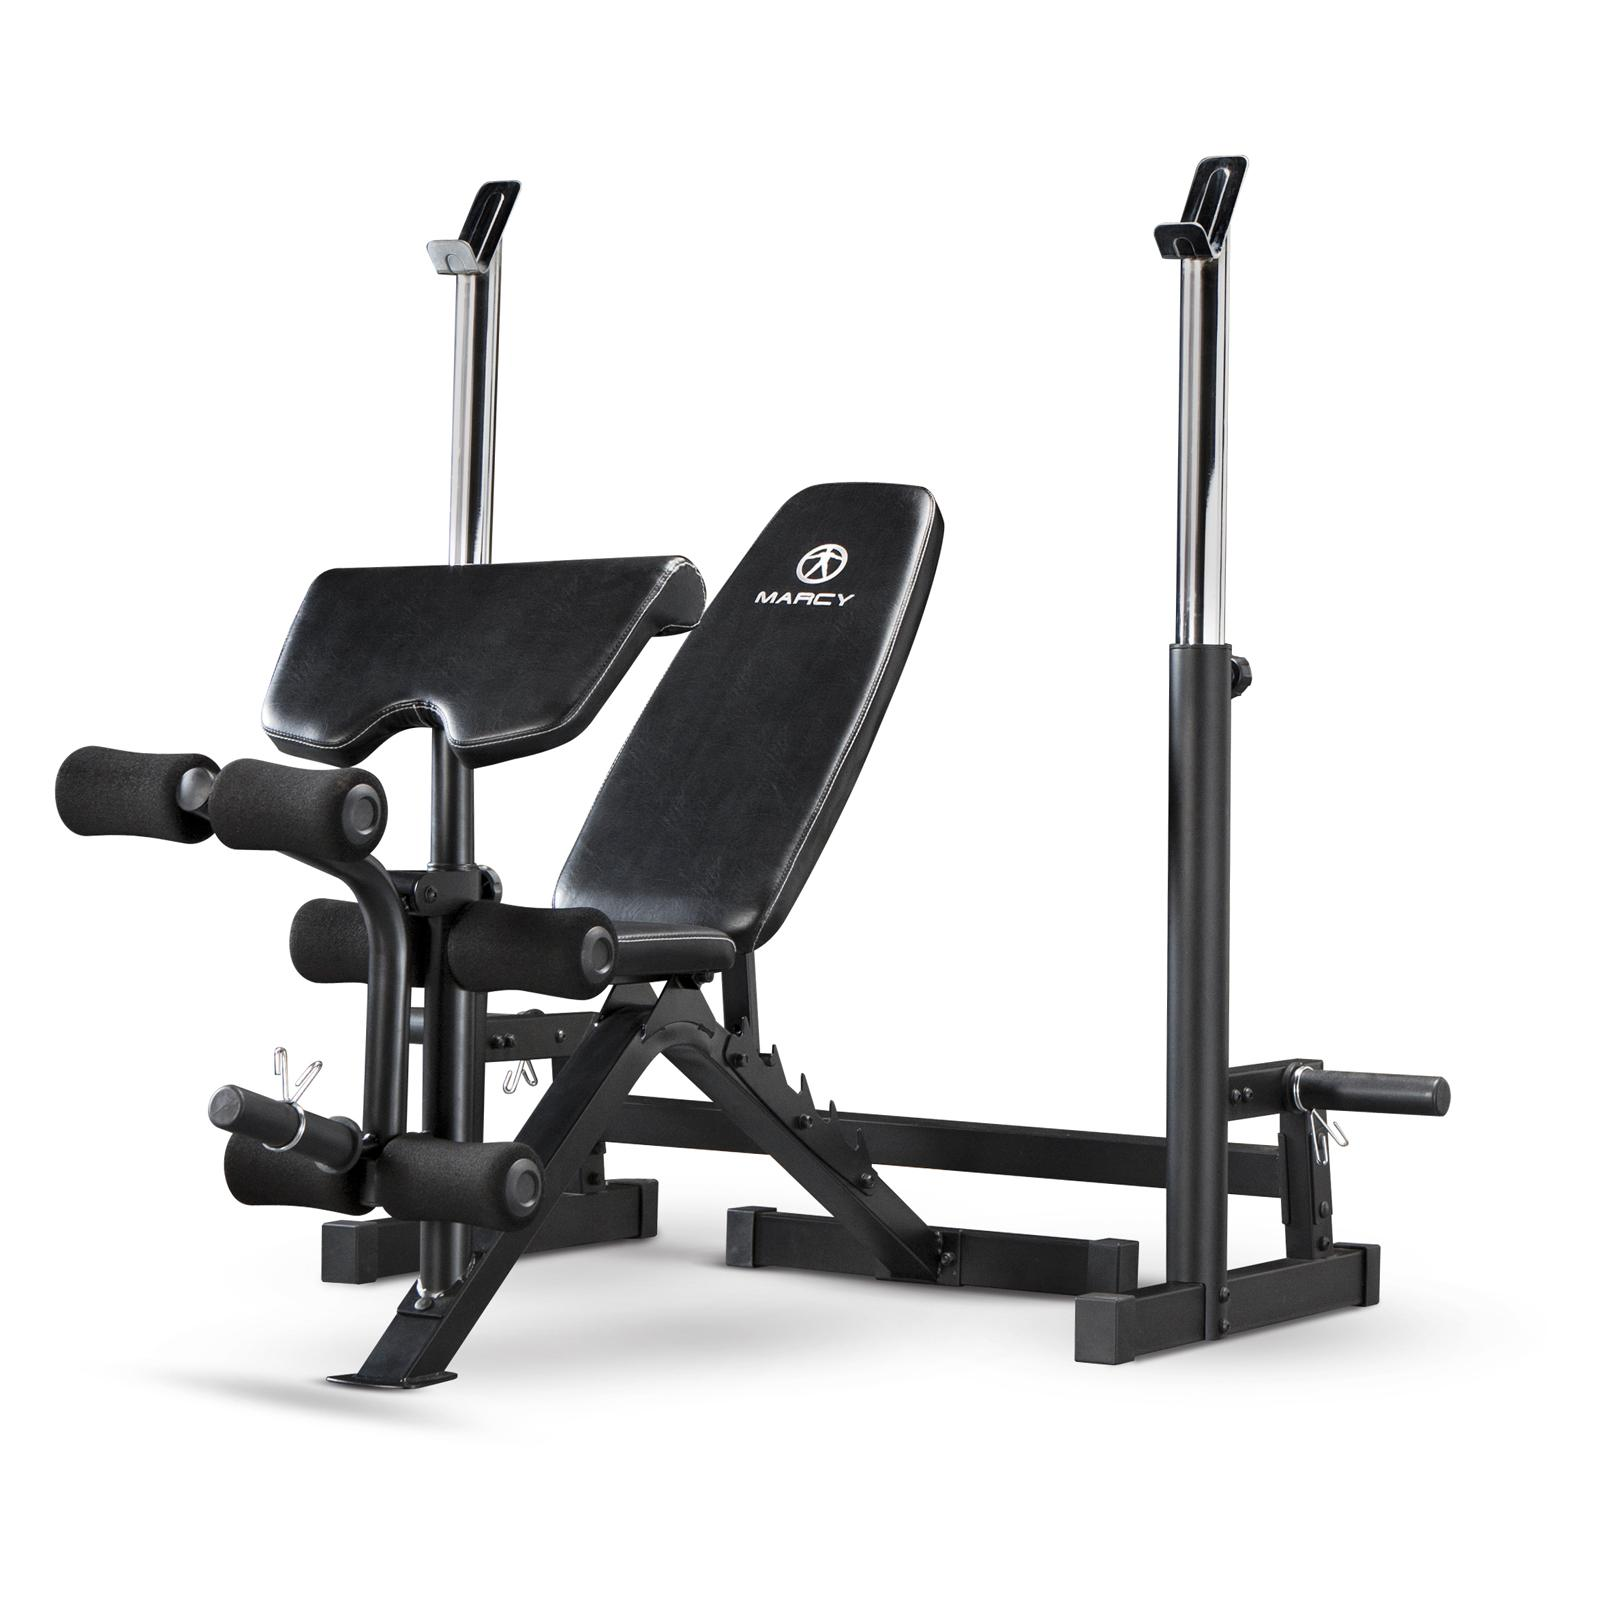 Marcy Deluxe Olympic Weight Bench - MWB-838